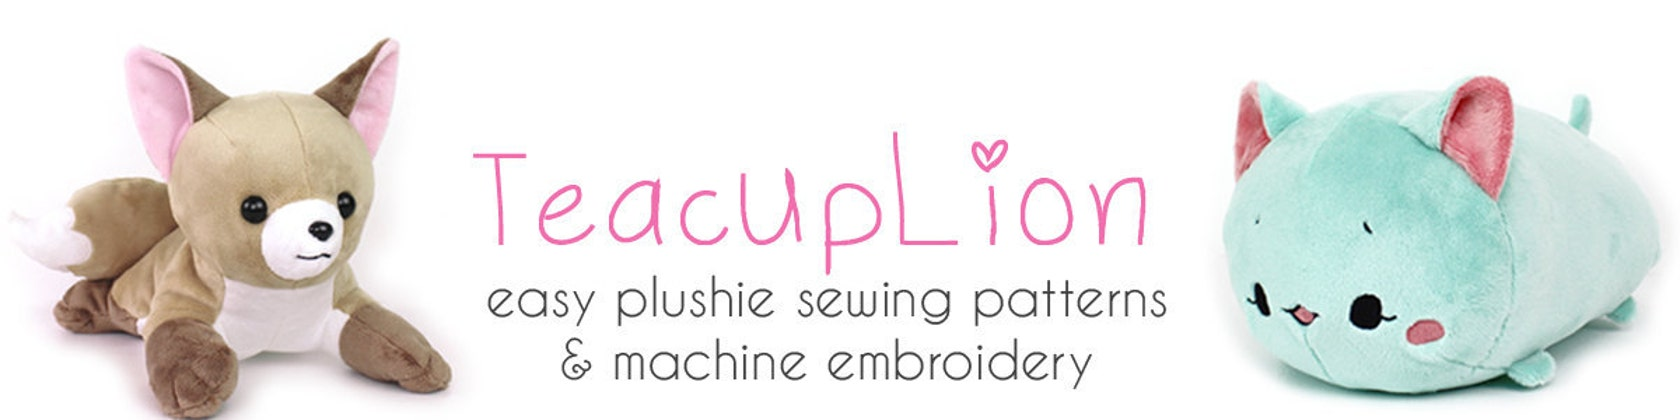 Easy kawaii plushie sewing and embroidery ITH por TeacupLion